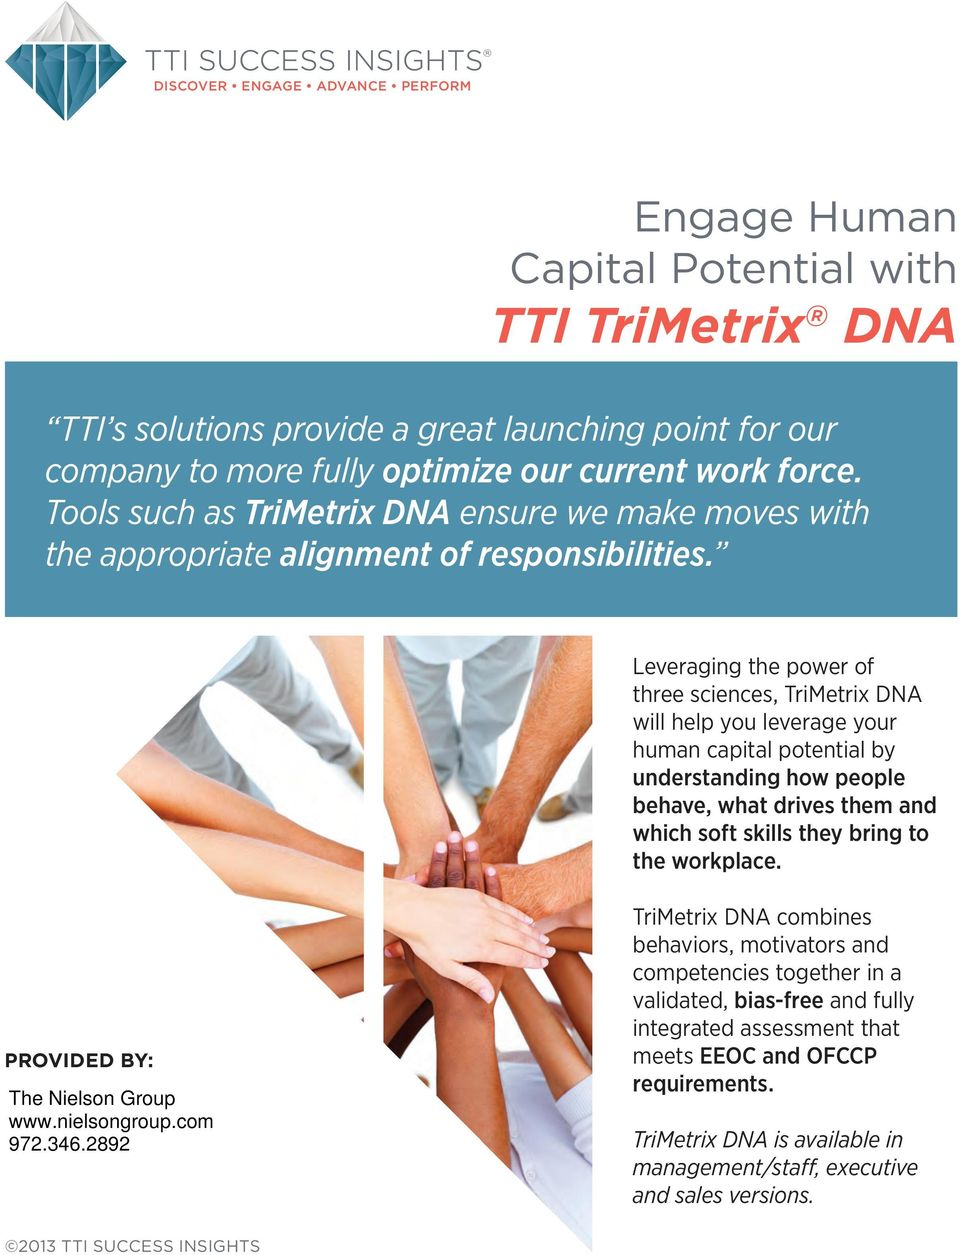 Leveraging the power of three sciences, TriMetrix DNA will help you leverage your human capital potential by understanding how people behave, what drives them and which soft skills they bring